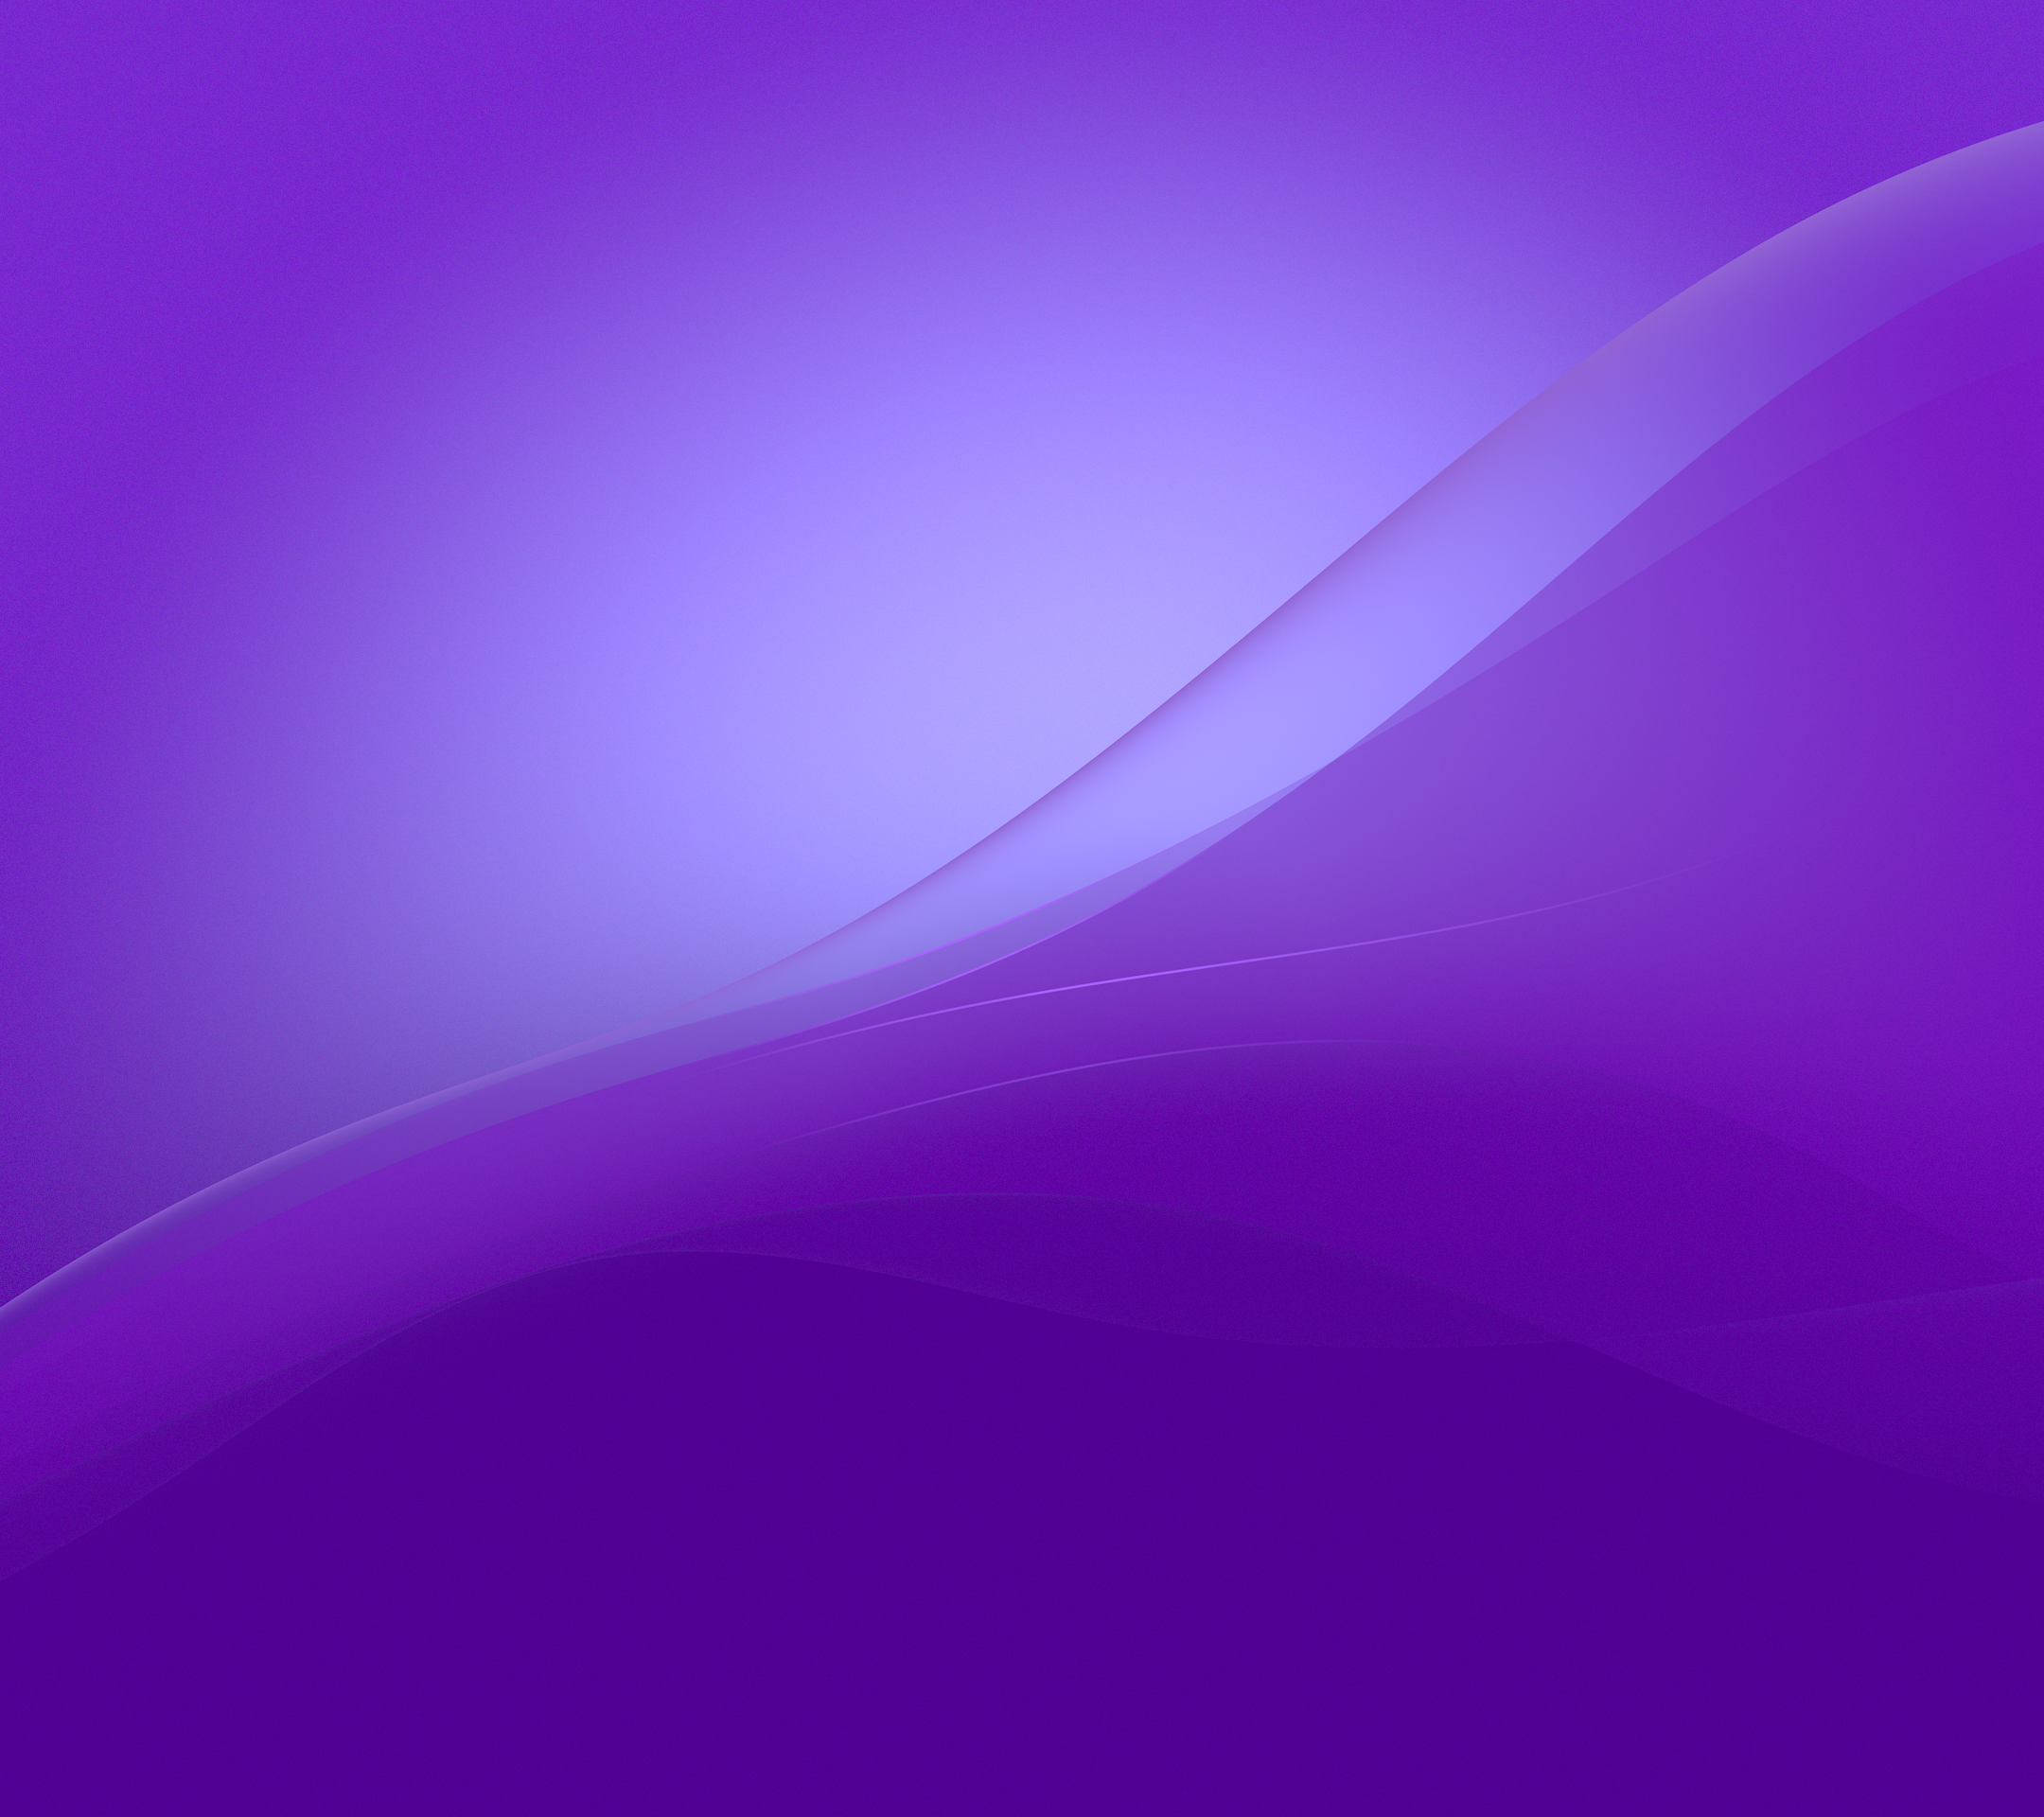 Download The Sony Xperia Z3 Wallpapers Here Now Sony Xperia Z3 Sony Xperia Sony